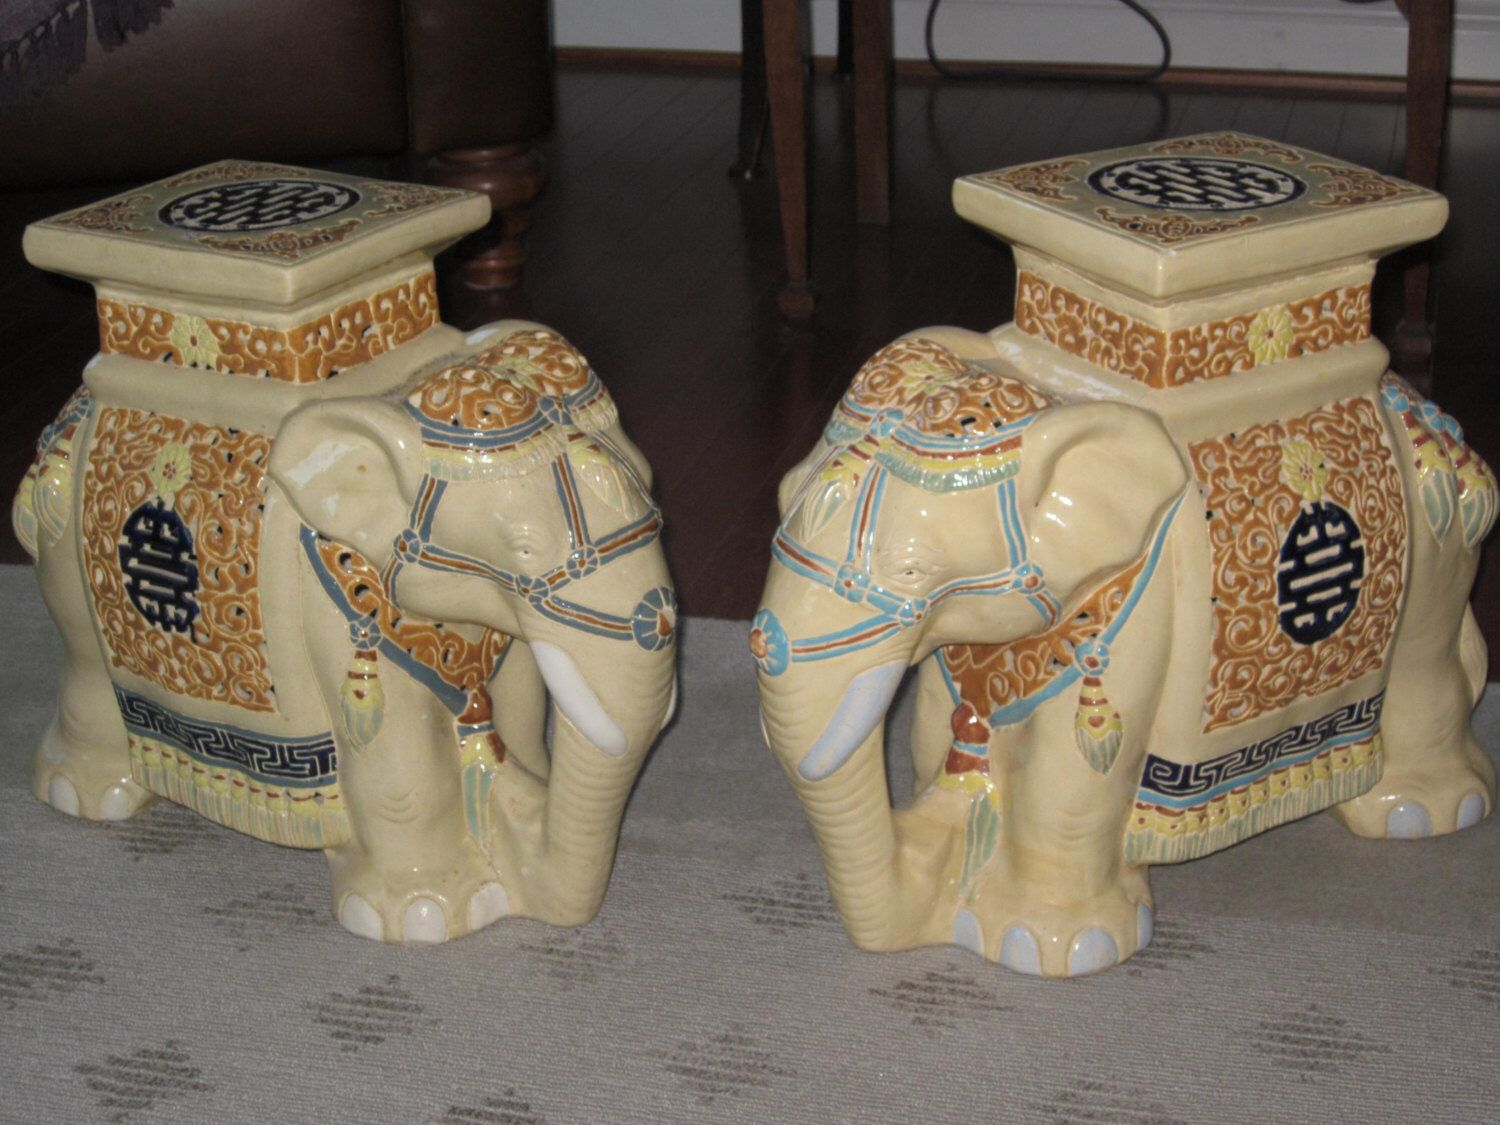 Beautiful Vintage Elephant Garden Stools, Side Table, Chinoiserie, Ceramic  Elephant Plant Stand Asian